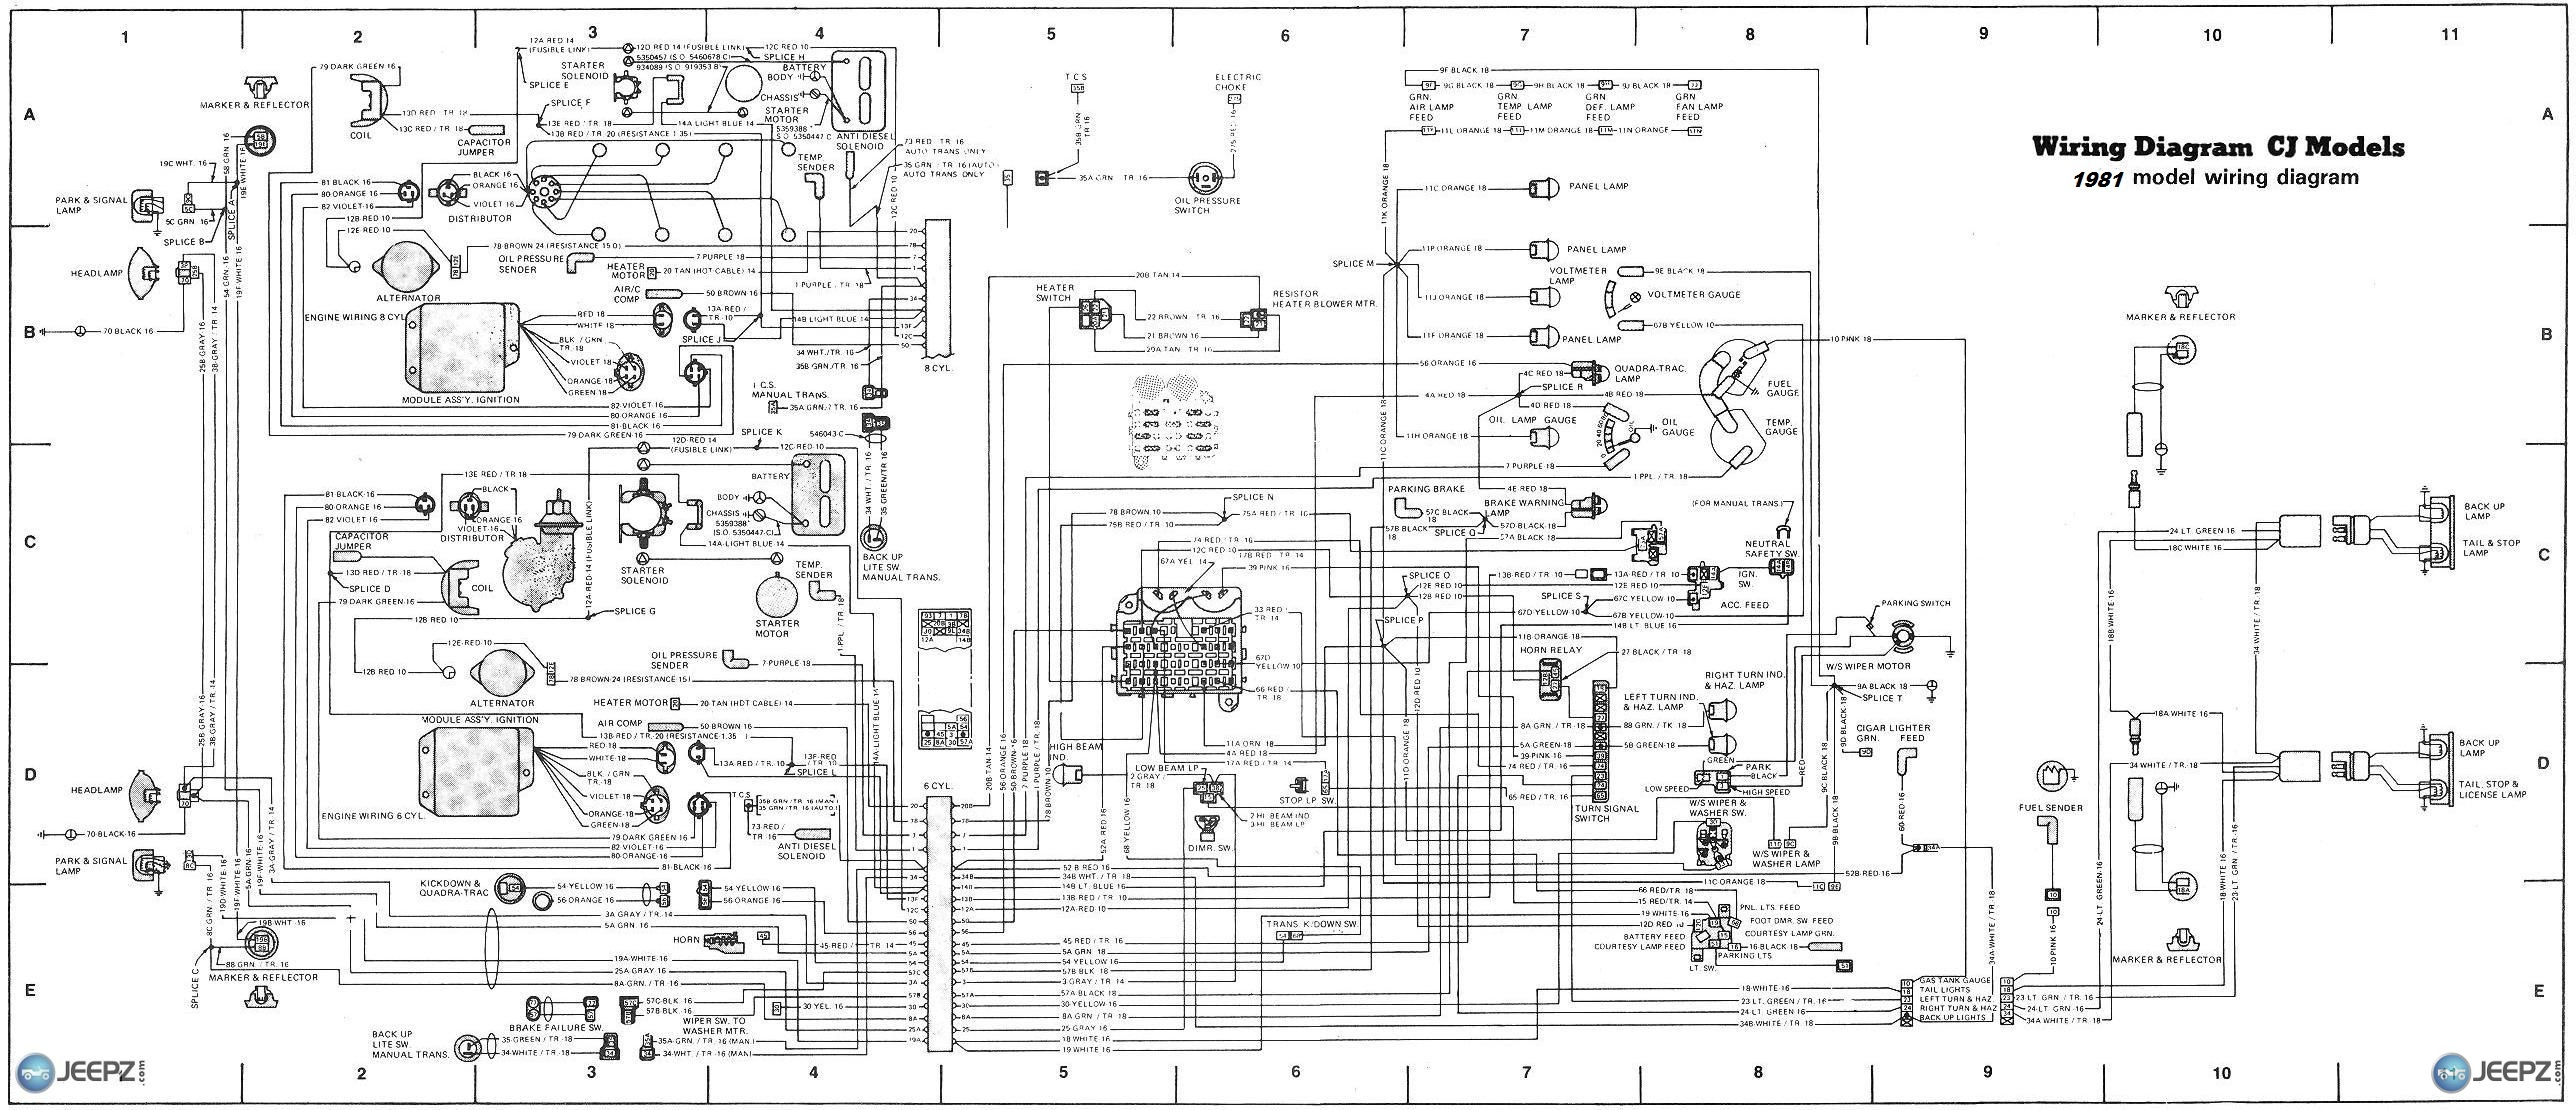 1975 Jeep Cj5 Wiring Diagram Electronic Wiring Diagrams Holley Carb Choke  Wiring-Diagram 74 Cj5 Wiring Diagram